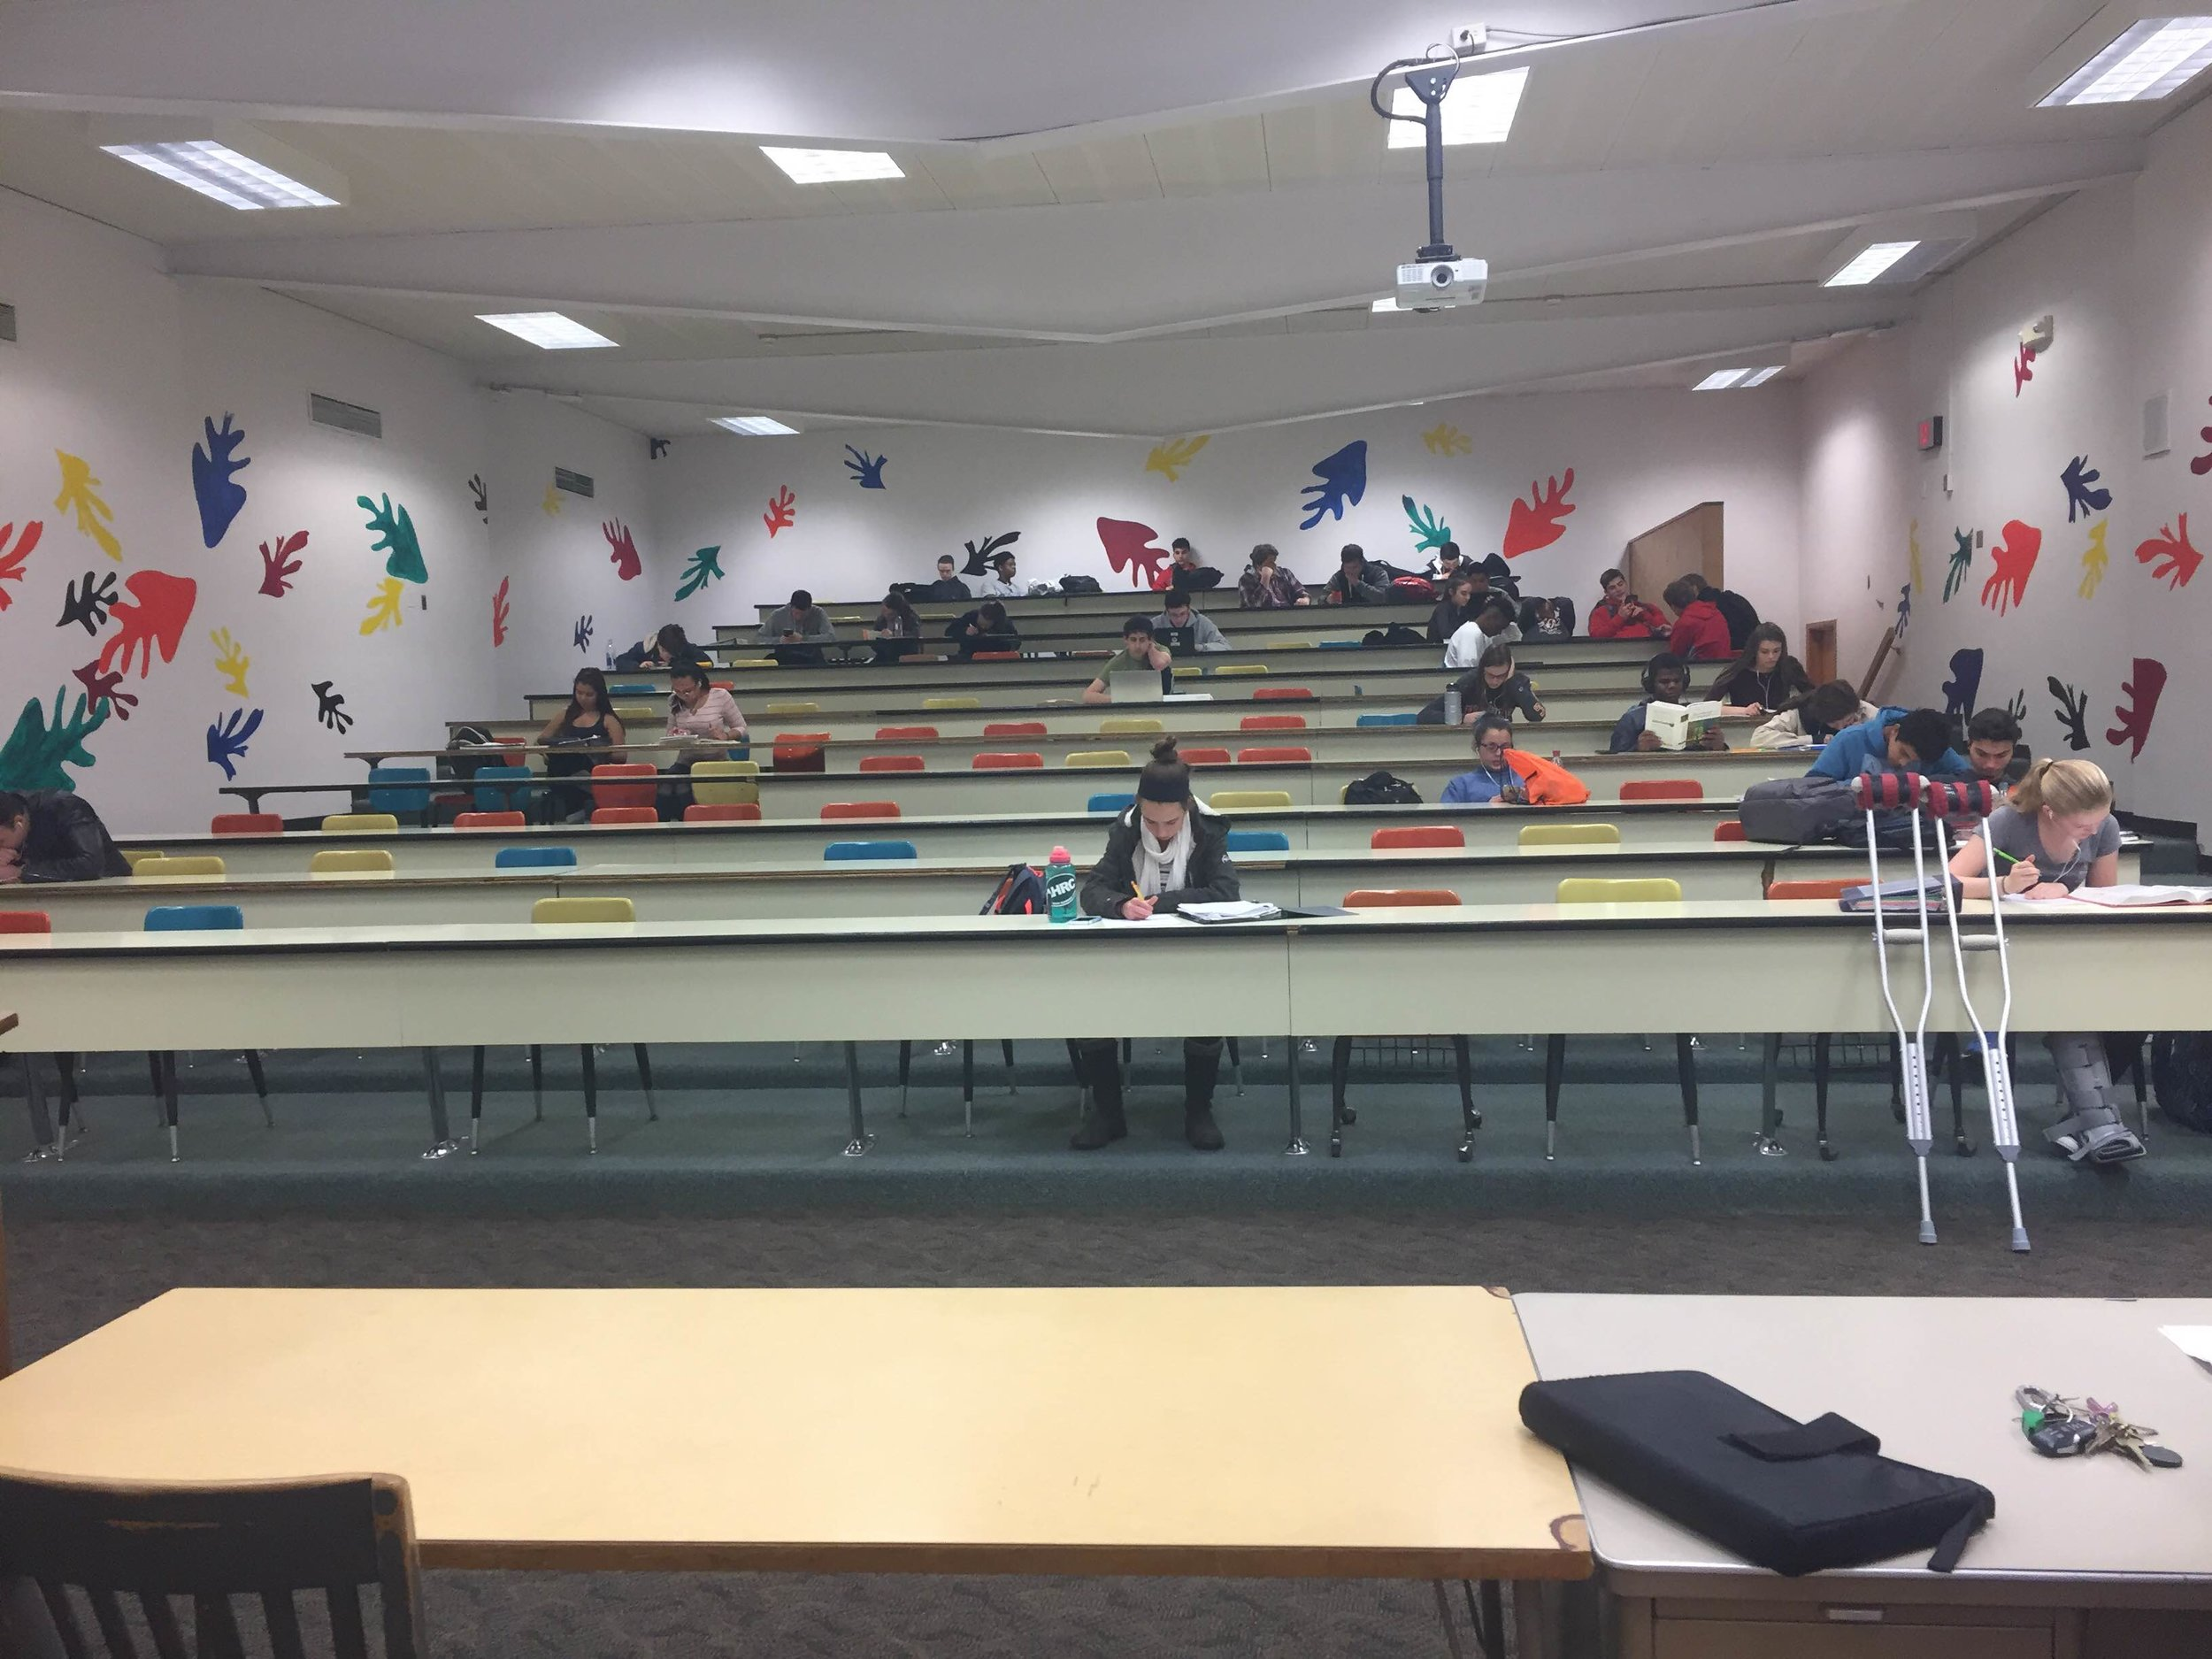 The large group room will be completely gutted and redone. Students returning in the Fall of 2018 can expect a very updated and modern room.